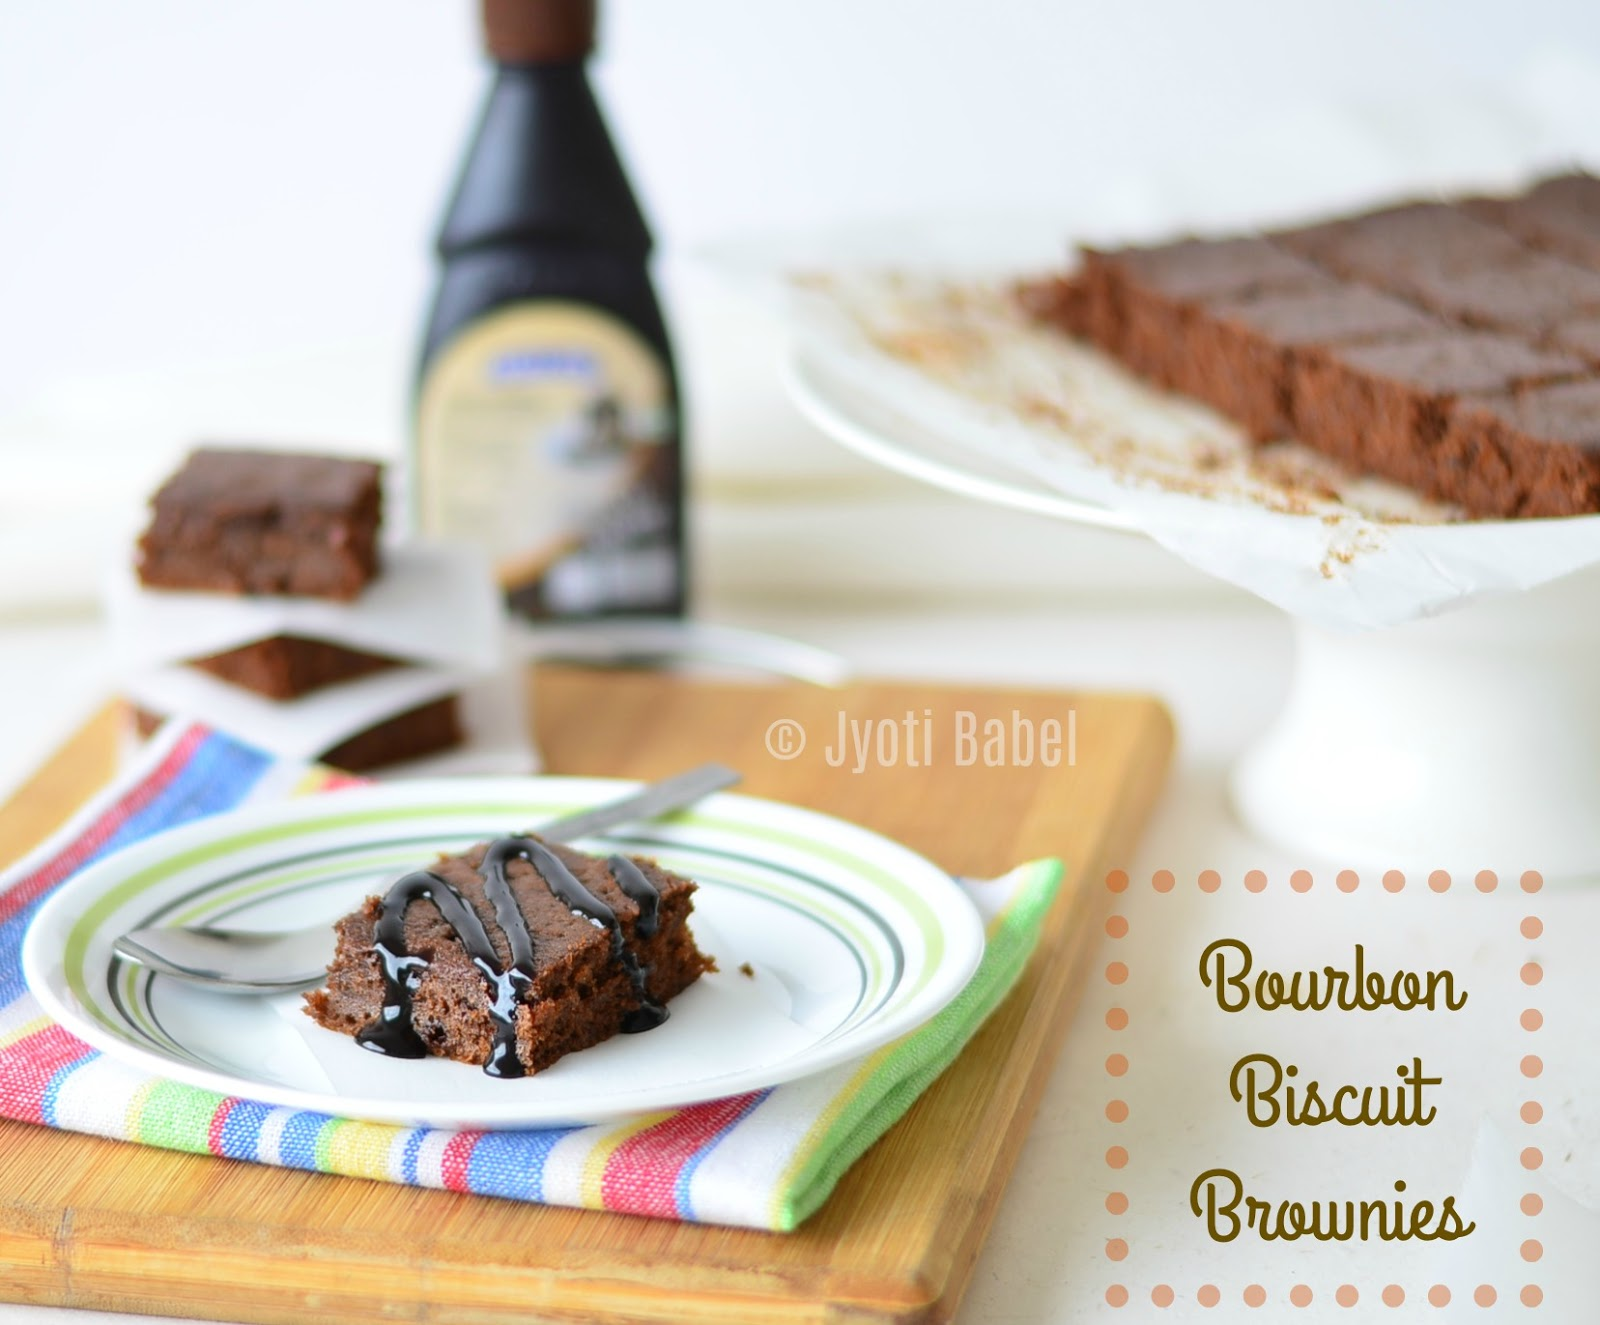 Jyoti S Pages Bourbon Biscuit Brownies Easy Bourbon Biscuit Brownie Recipe